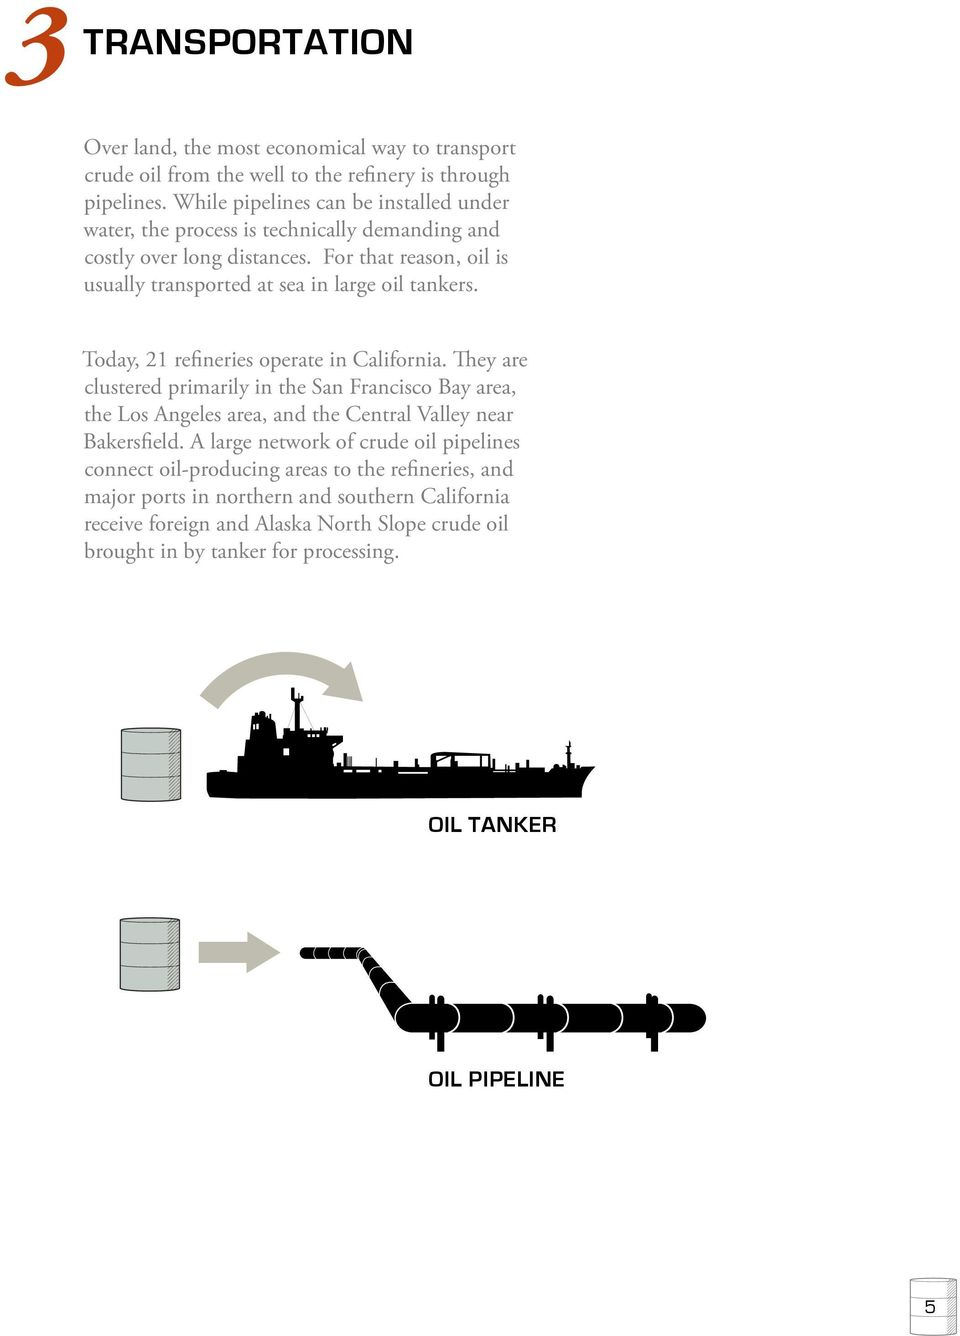 For that reason, oil is usually transported at sea in large oil tankers. Today, 21 refineries operate in California.